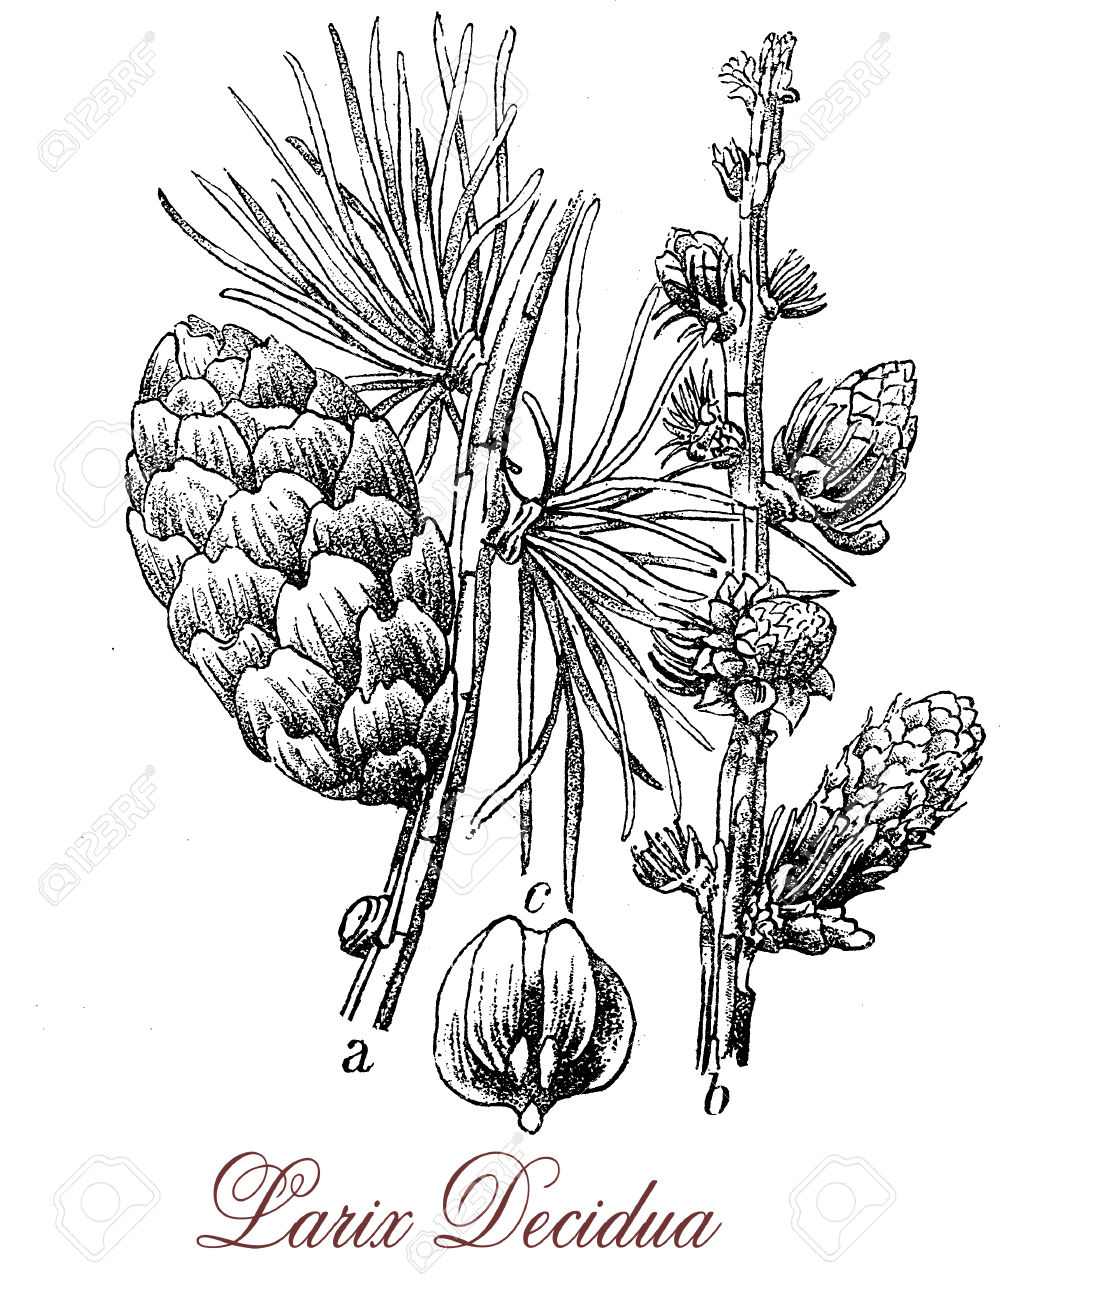 European Larch Is Deciduous Coniferous Tree With Needle.